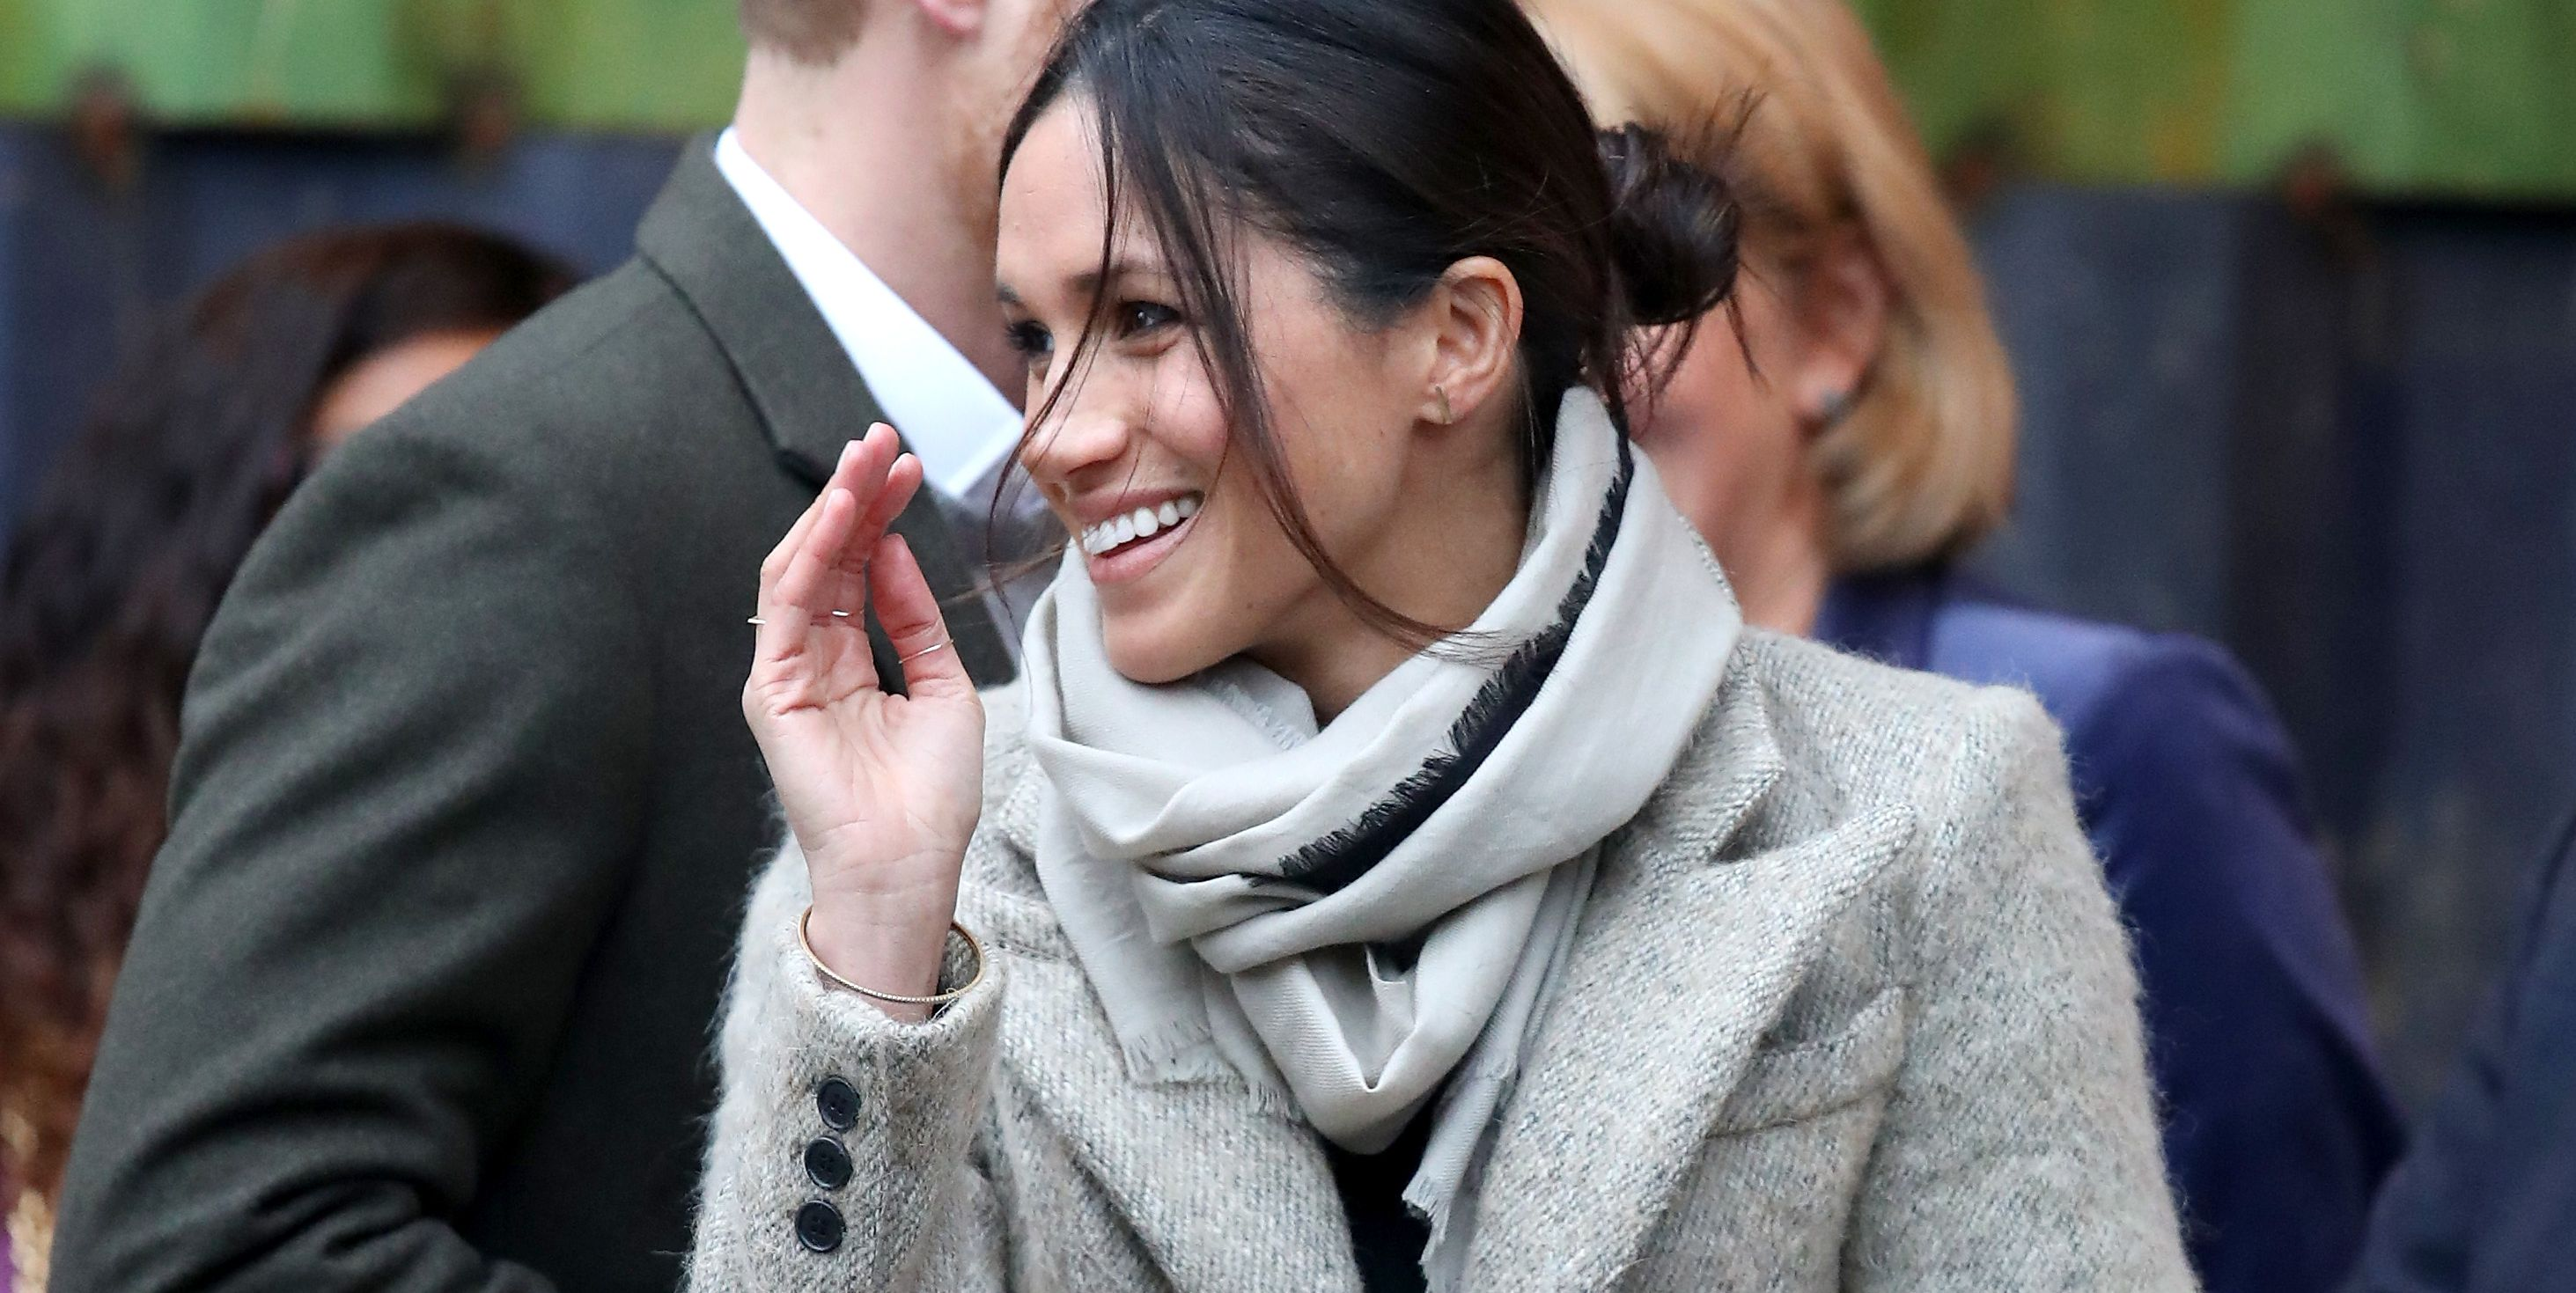 Meghan Markle Has Already Mastered the Royal Wave